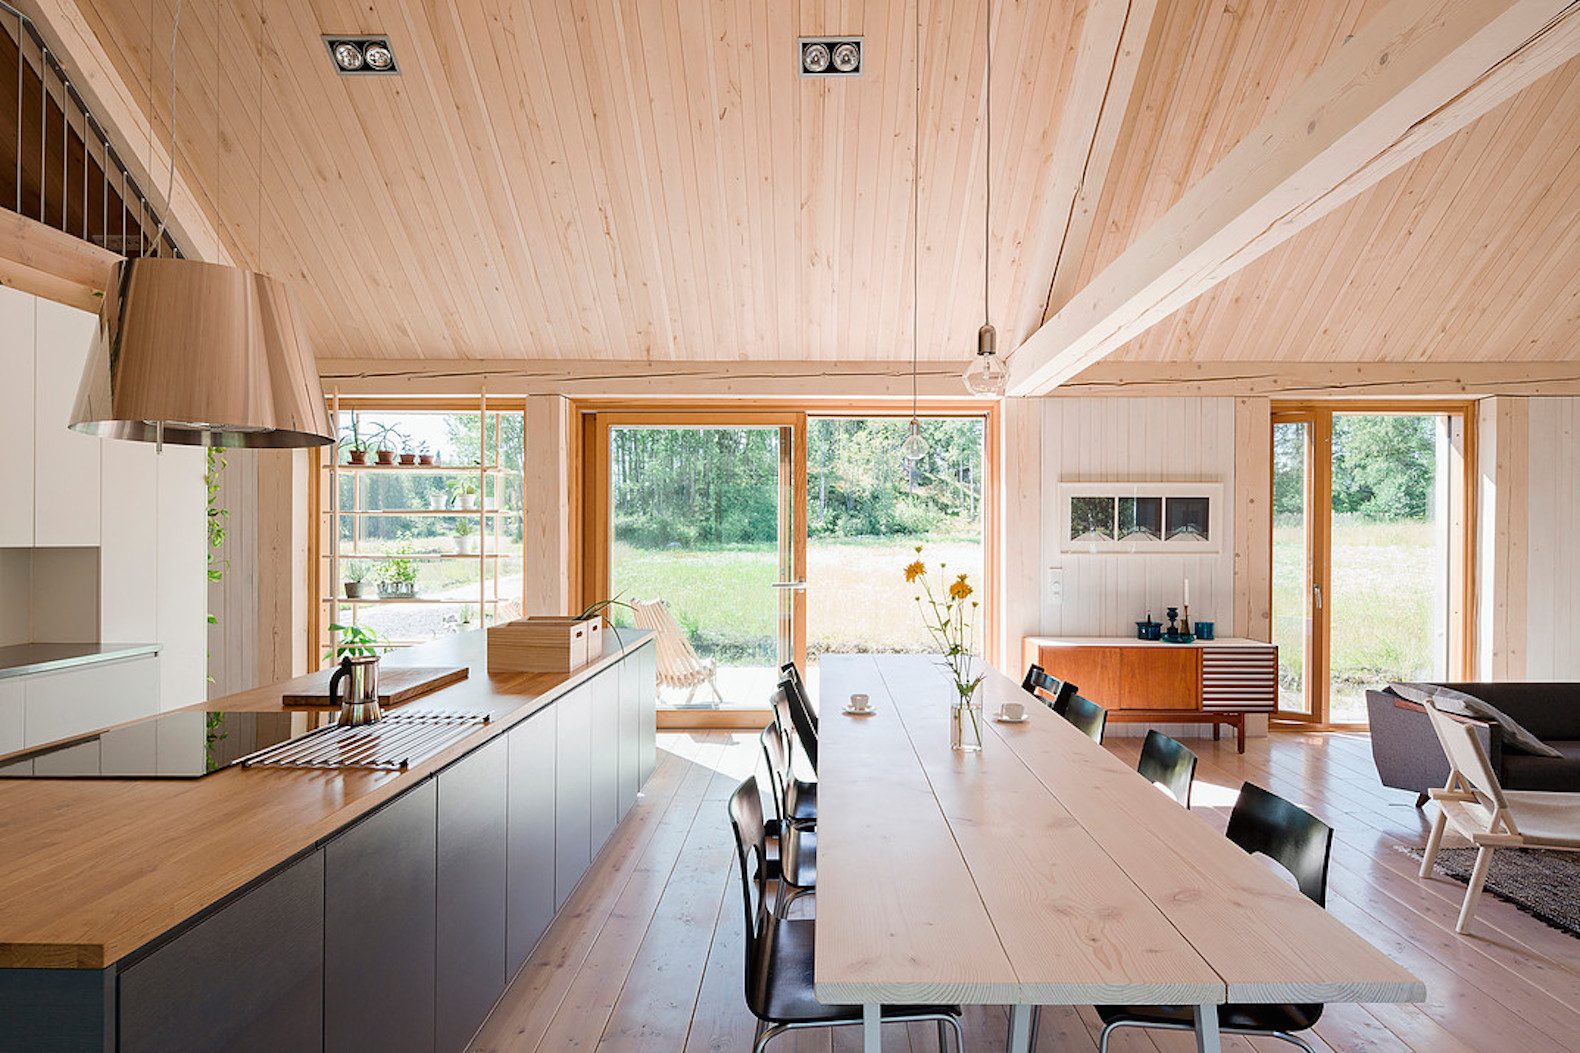 House Åkerudden by MNy Arkitekter, contemporary timber architecture, modern gabled architecture, Tenala architecture, Finnish lakeshore architecture